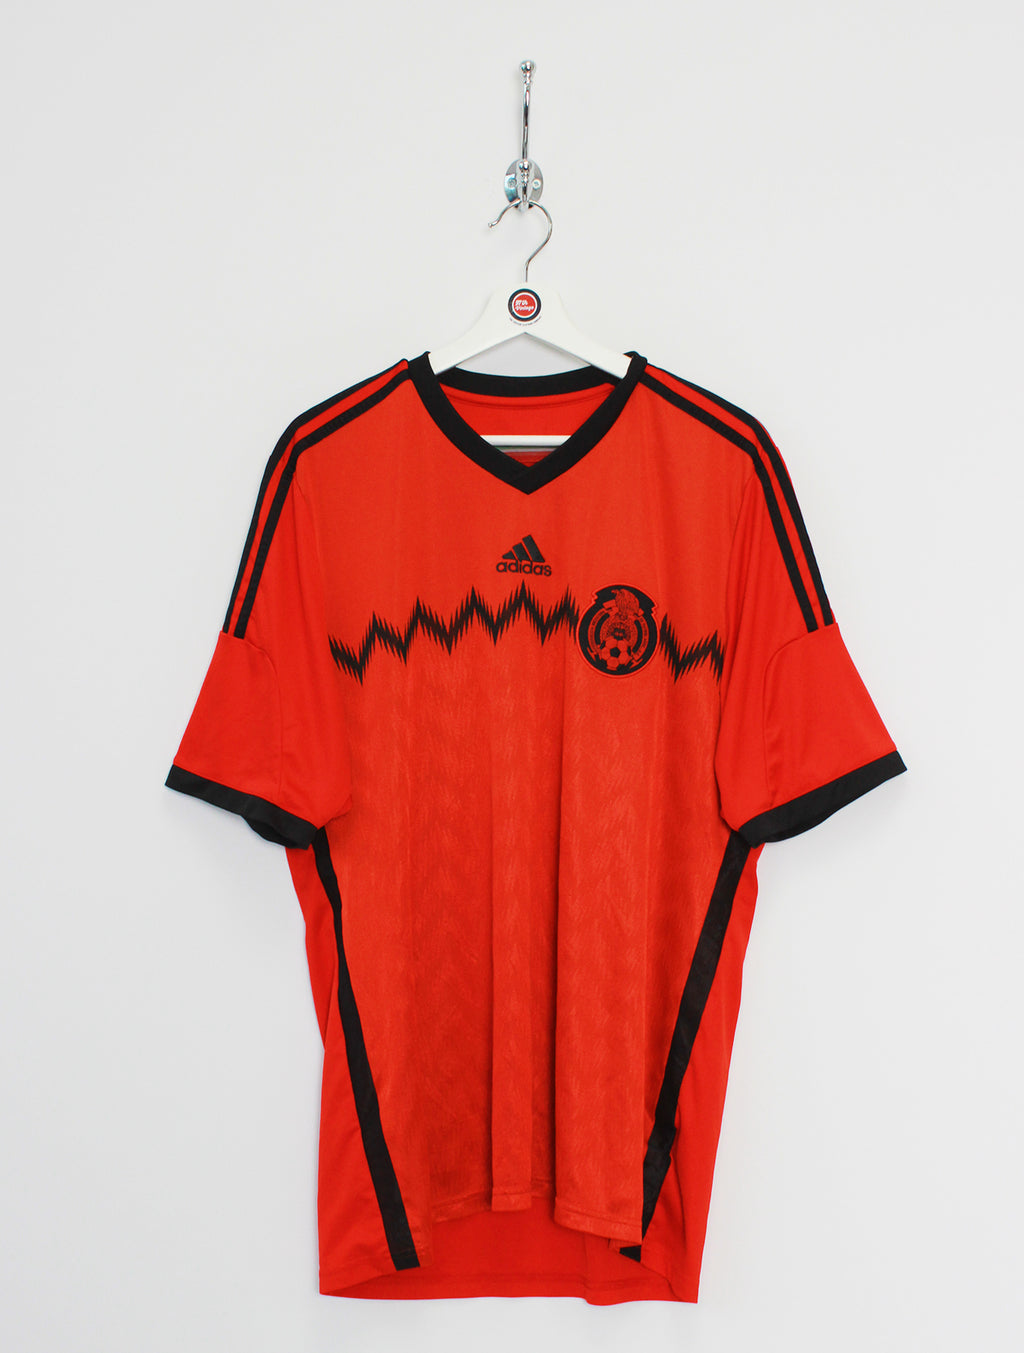 2014 Mexico Football Shirt (XL)